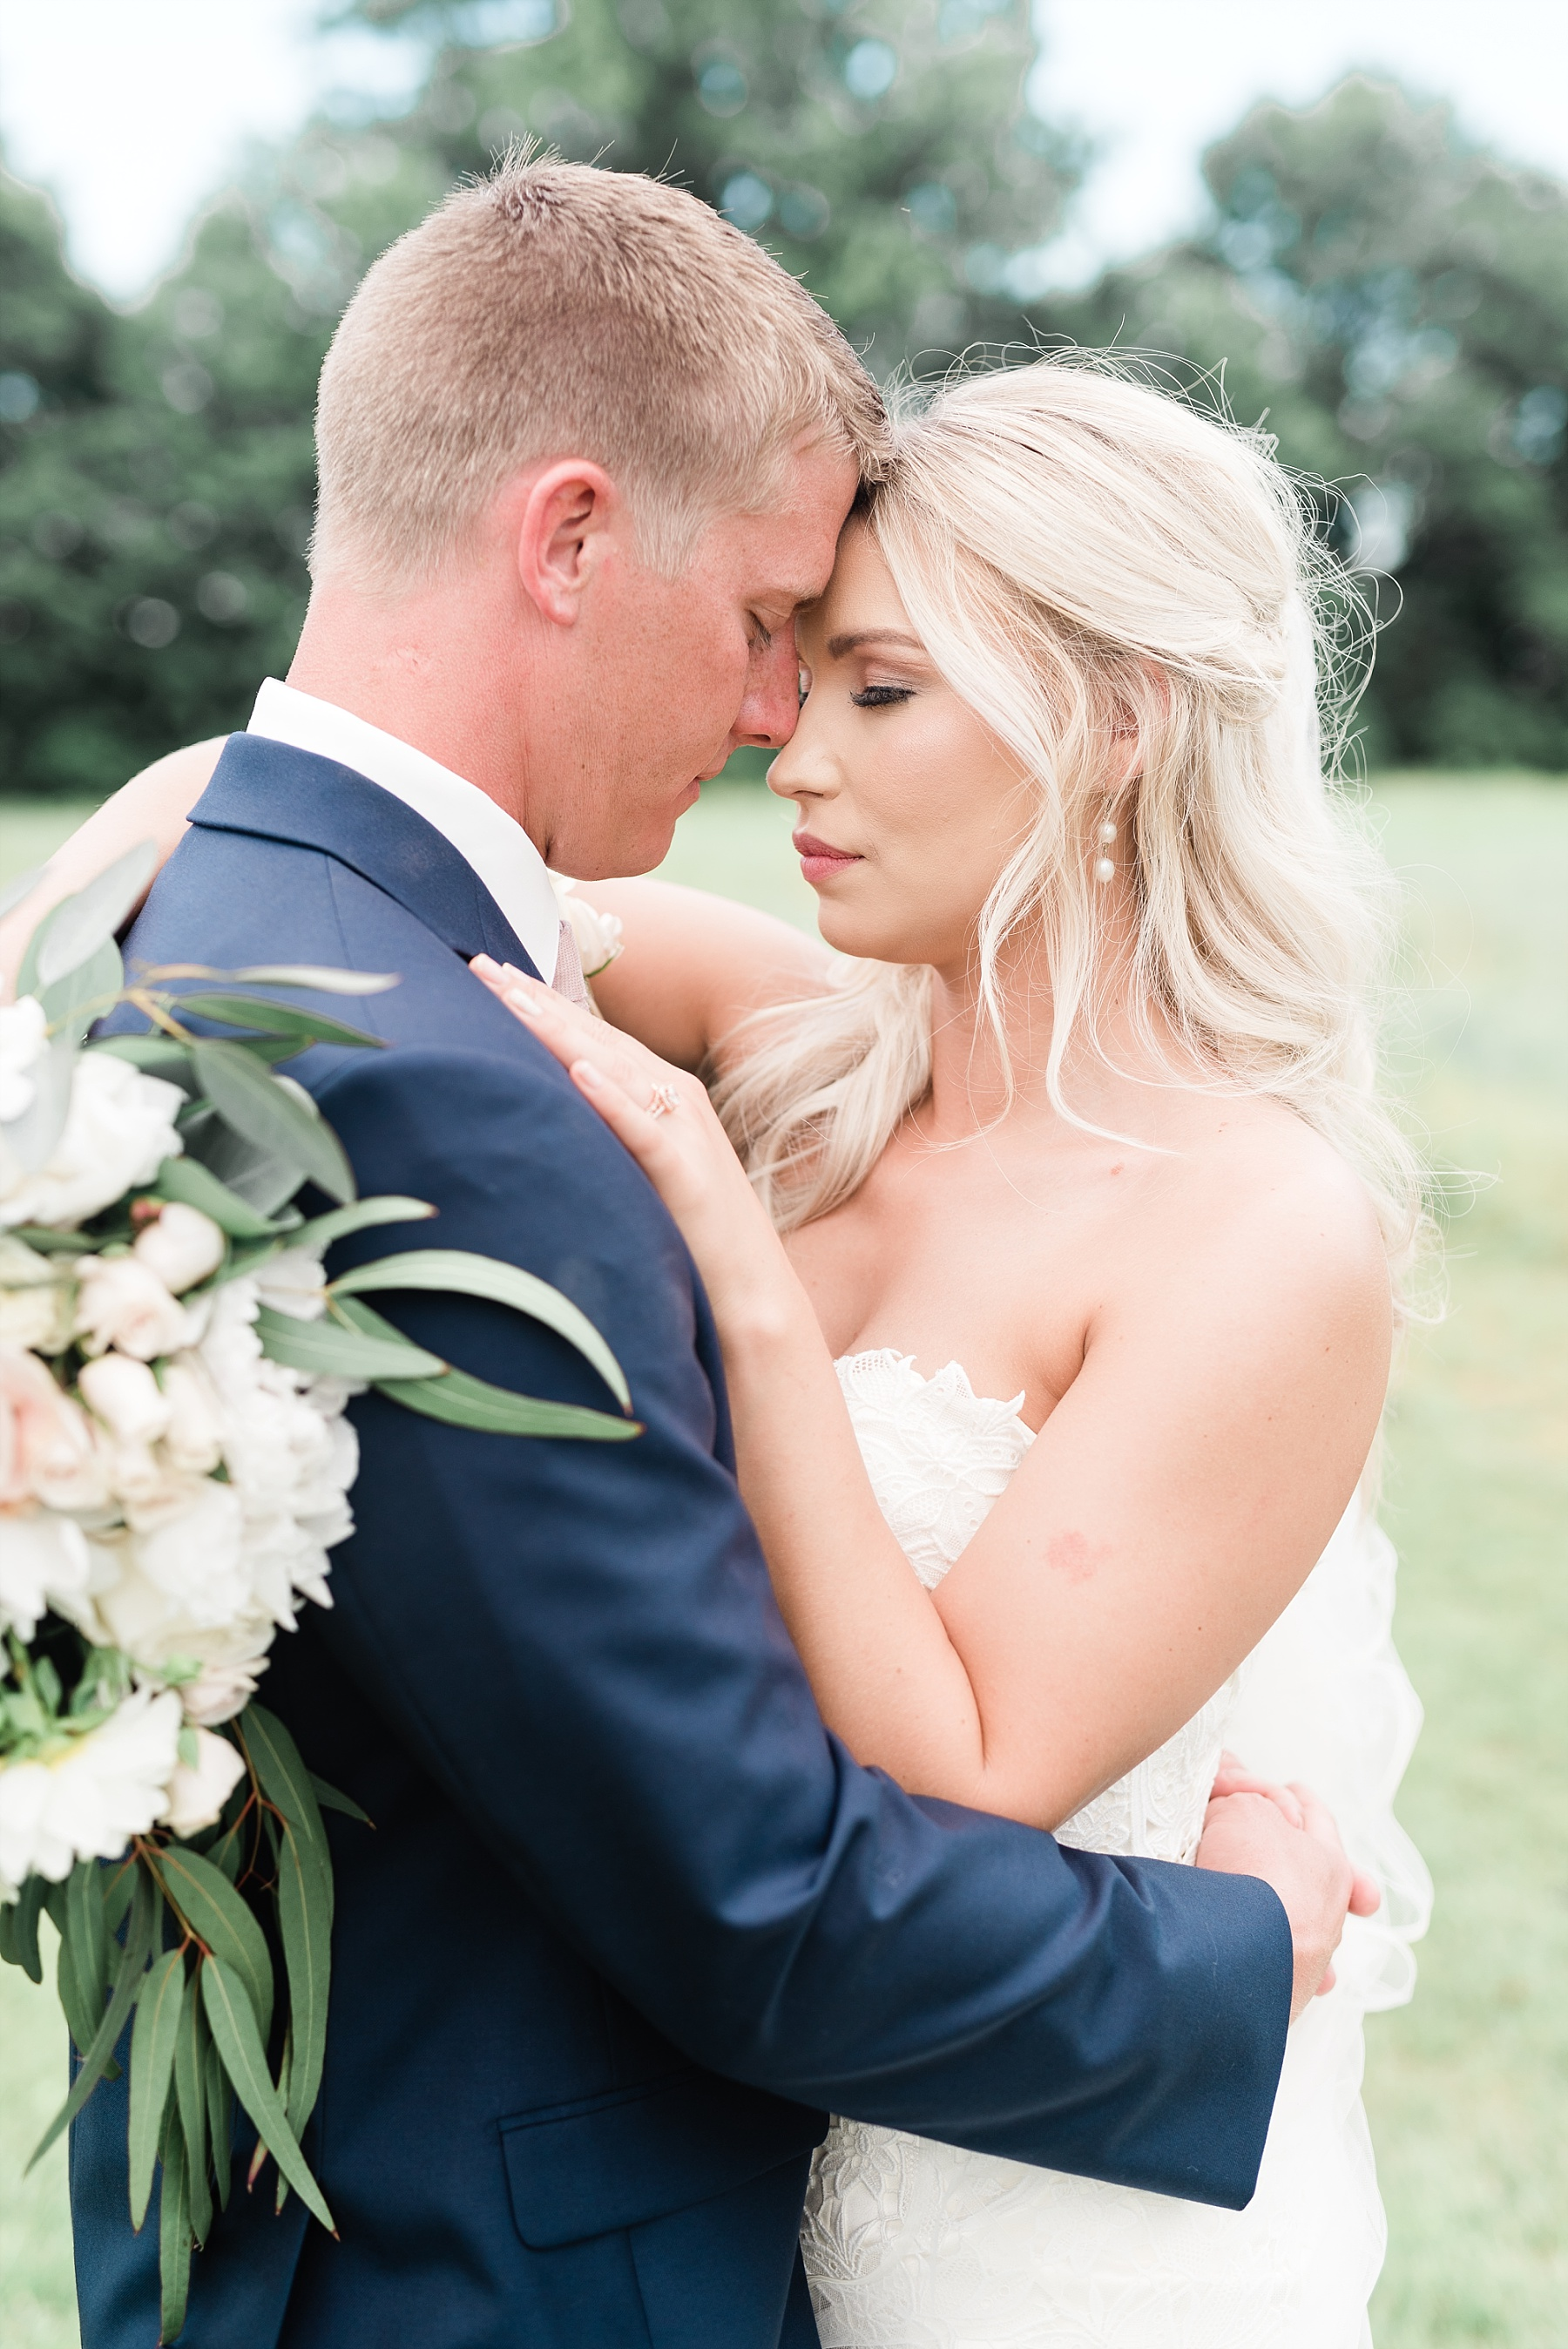 Stunning Heartfelt, Elegant, Fine Art, Chic, Outdoor Spring Wedding with Blush, Cream, Greenery, Rose Gold, and Sequins at Emerson Fields Venue by Kelsi Kliethermes Photography_0059.jpg